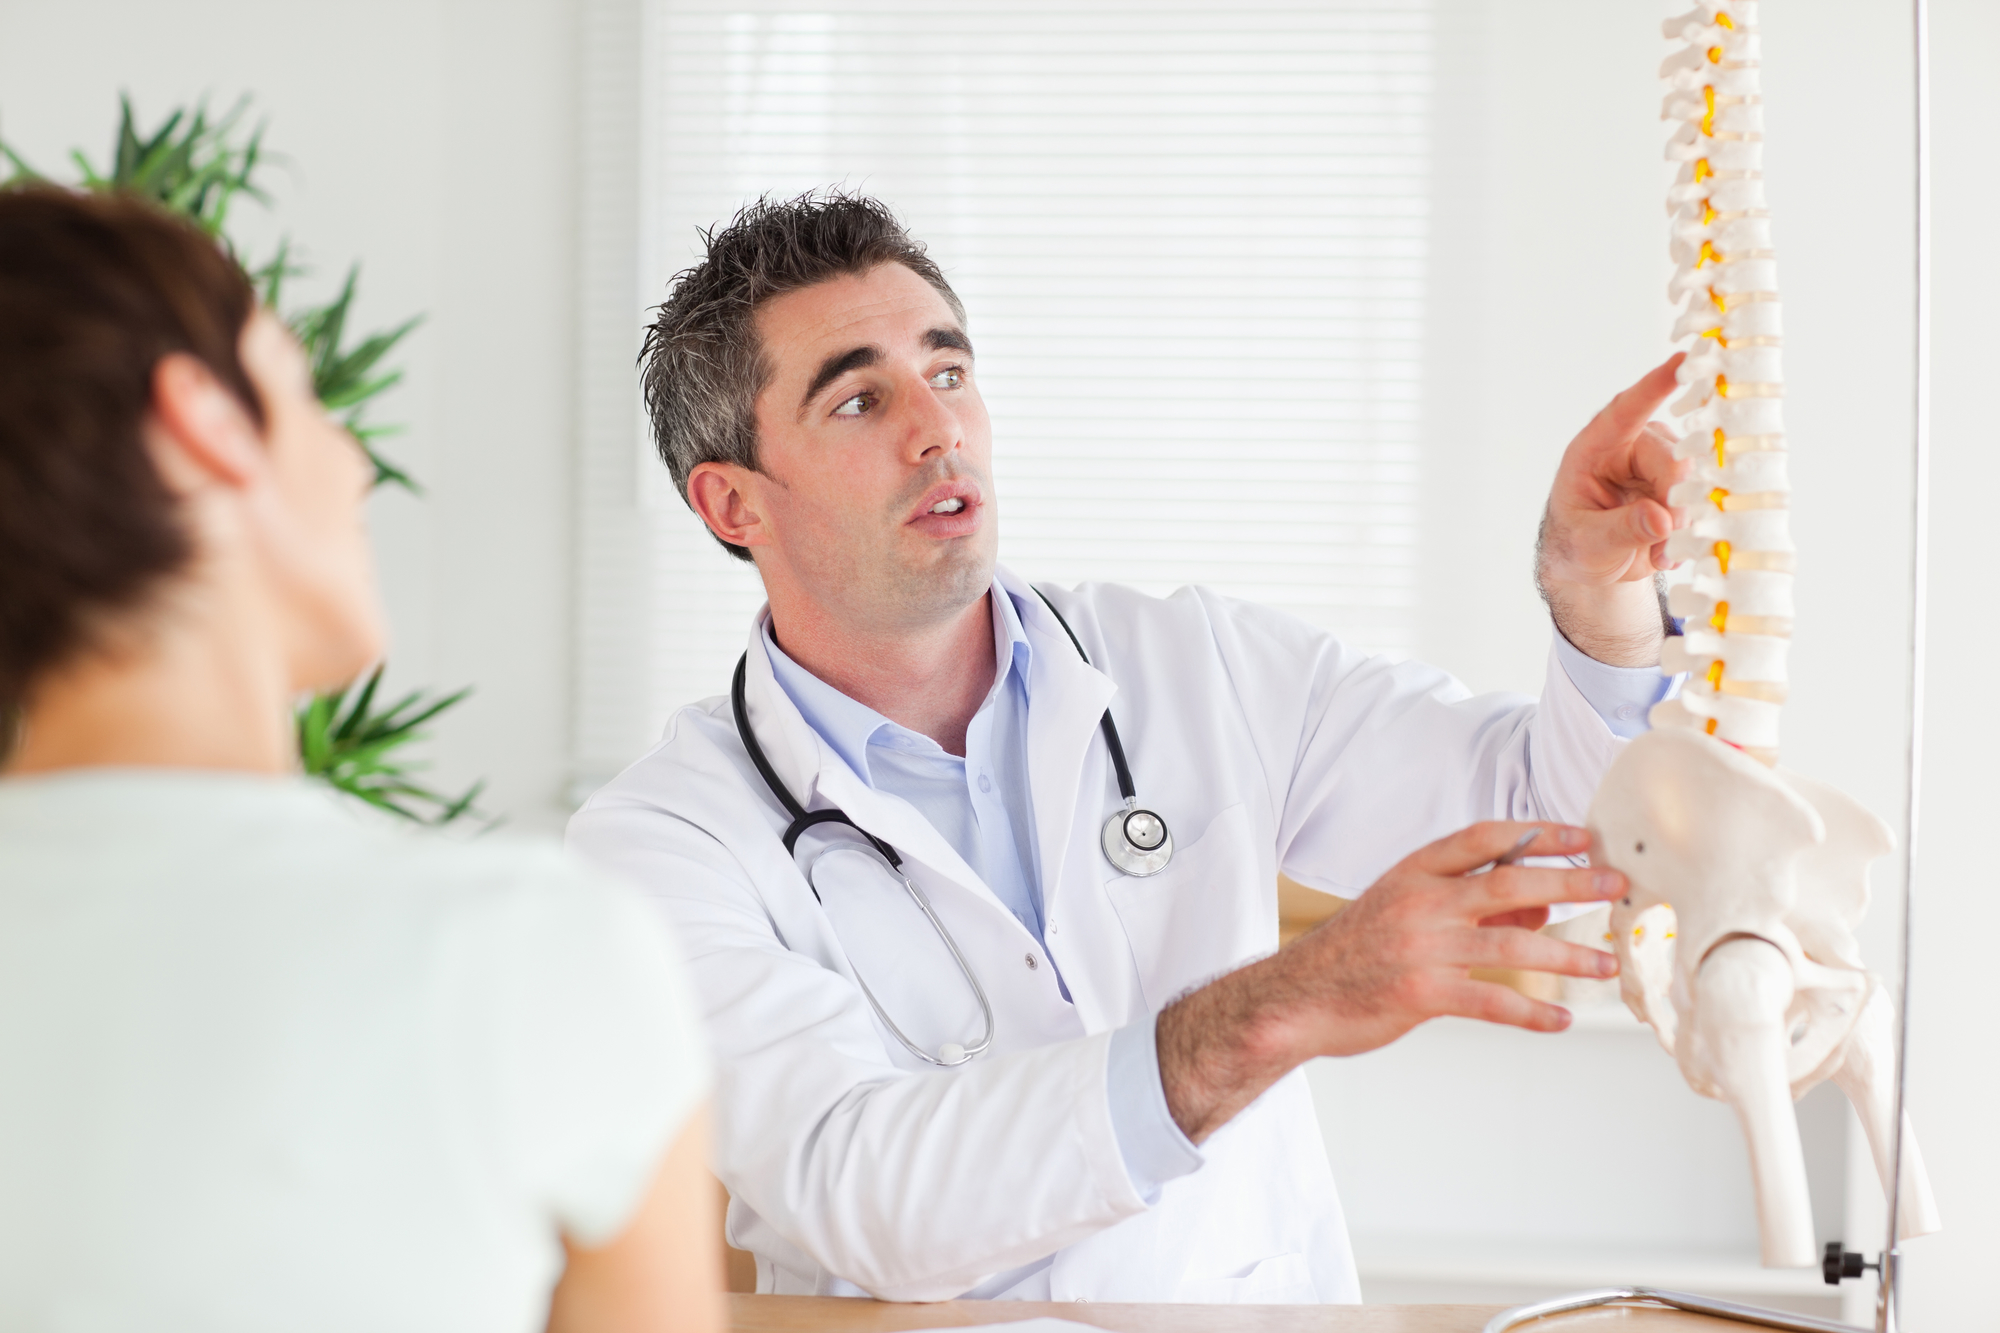 Chiropractor With Spine